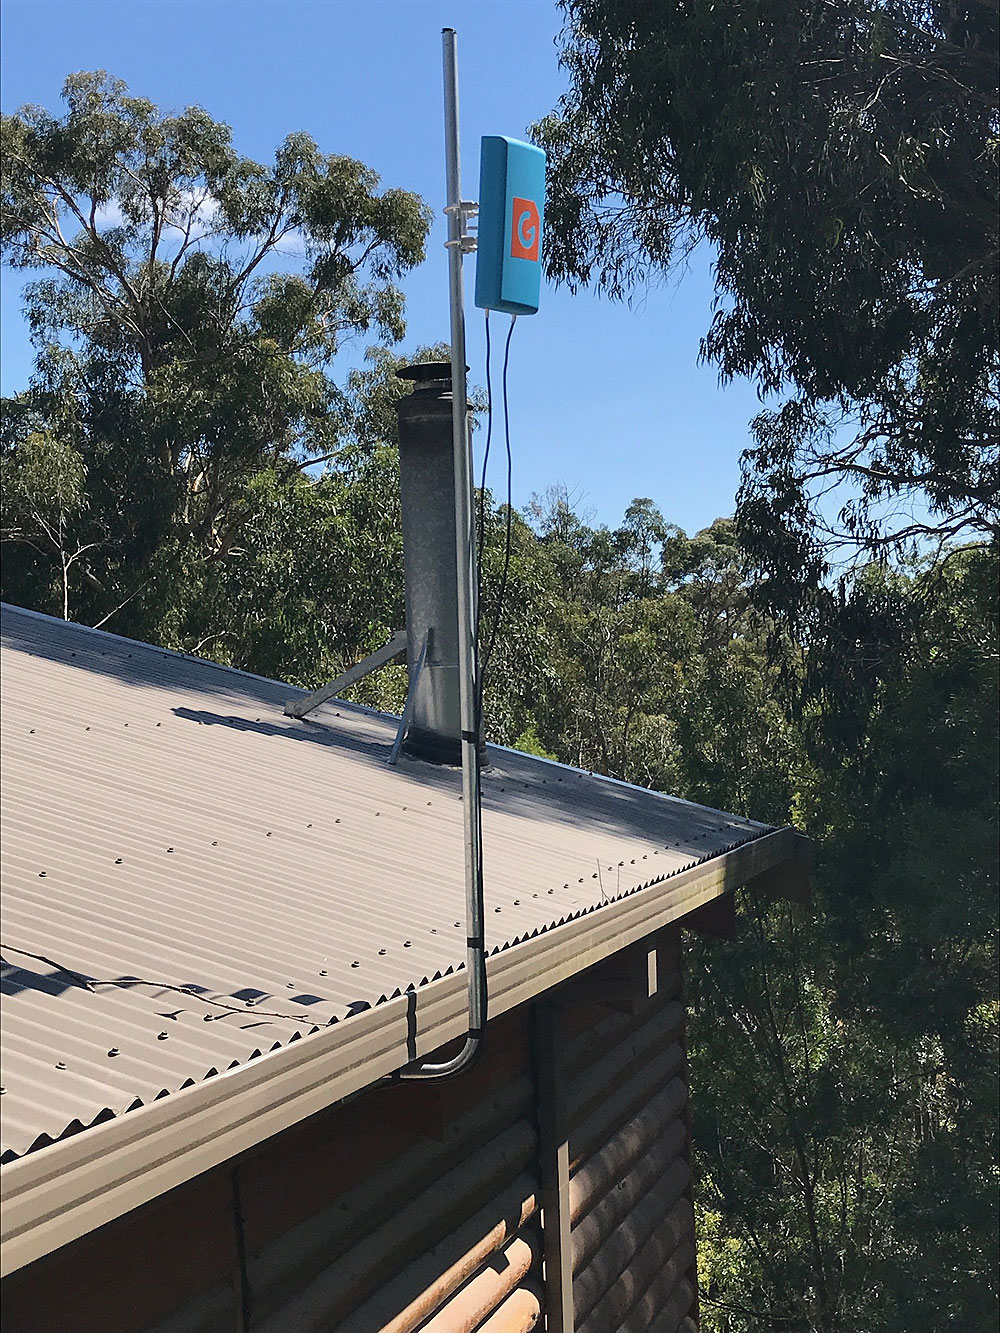 Optus 4G internet signal increase with True BlueG Spotter Antenna